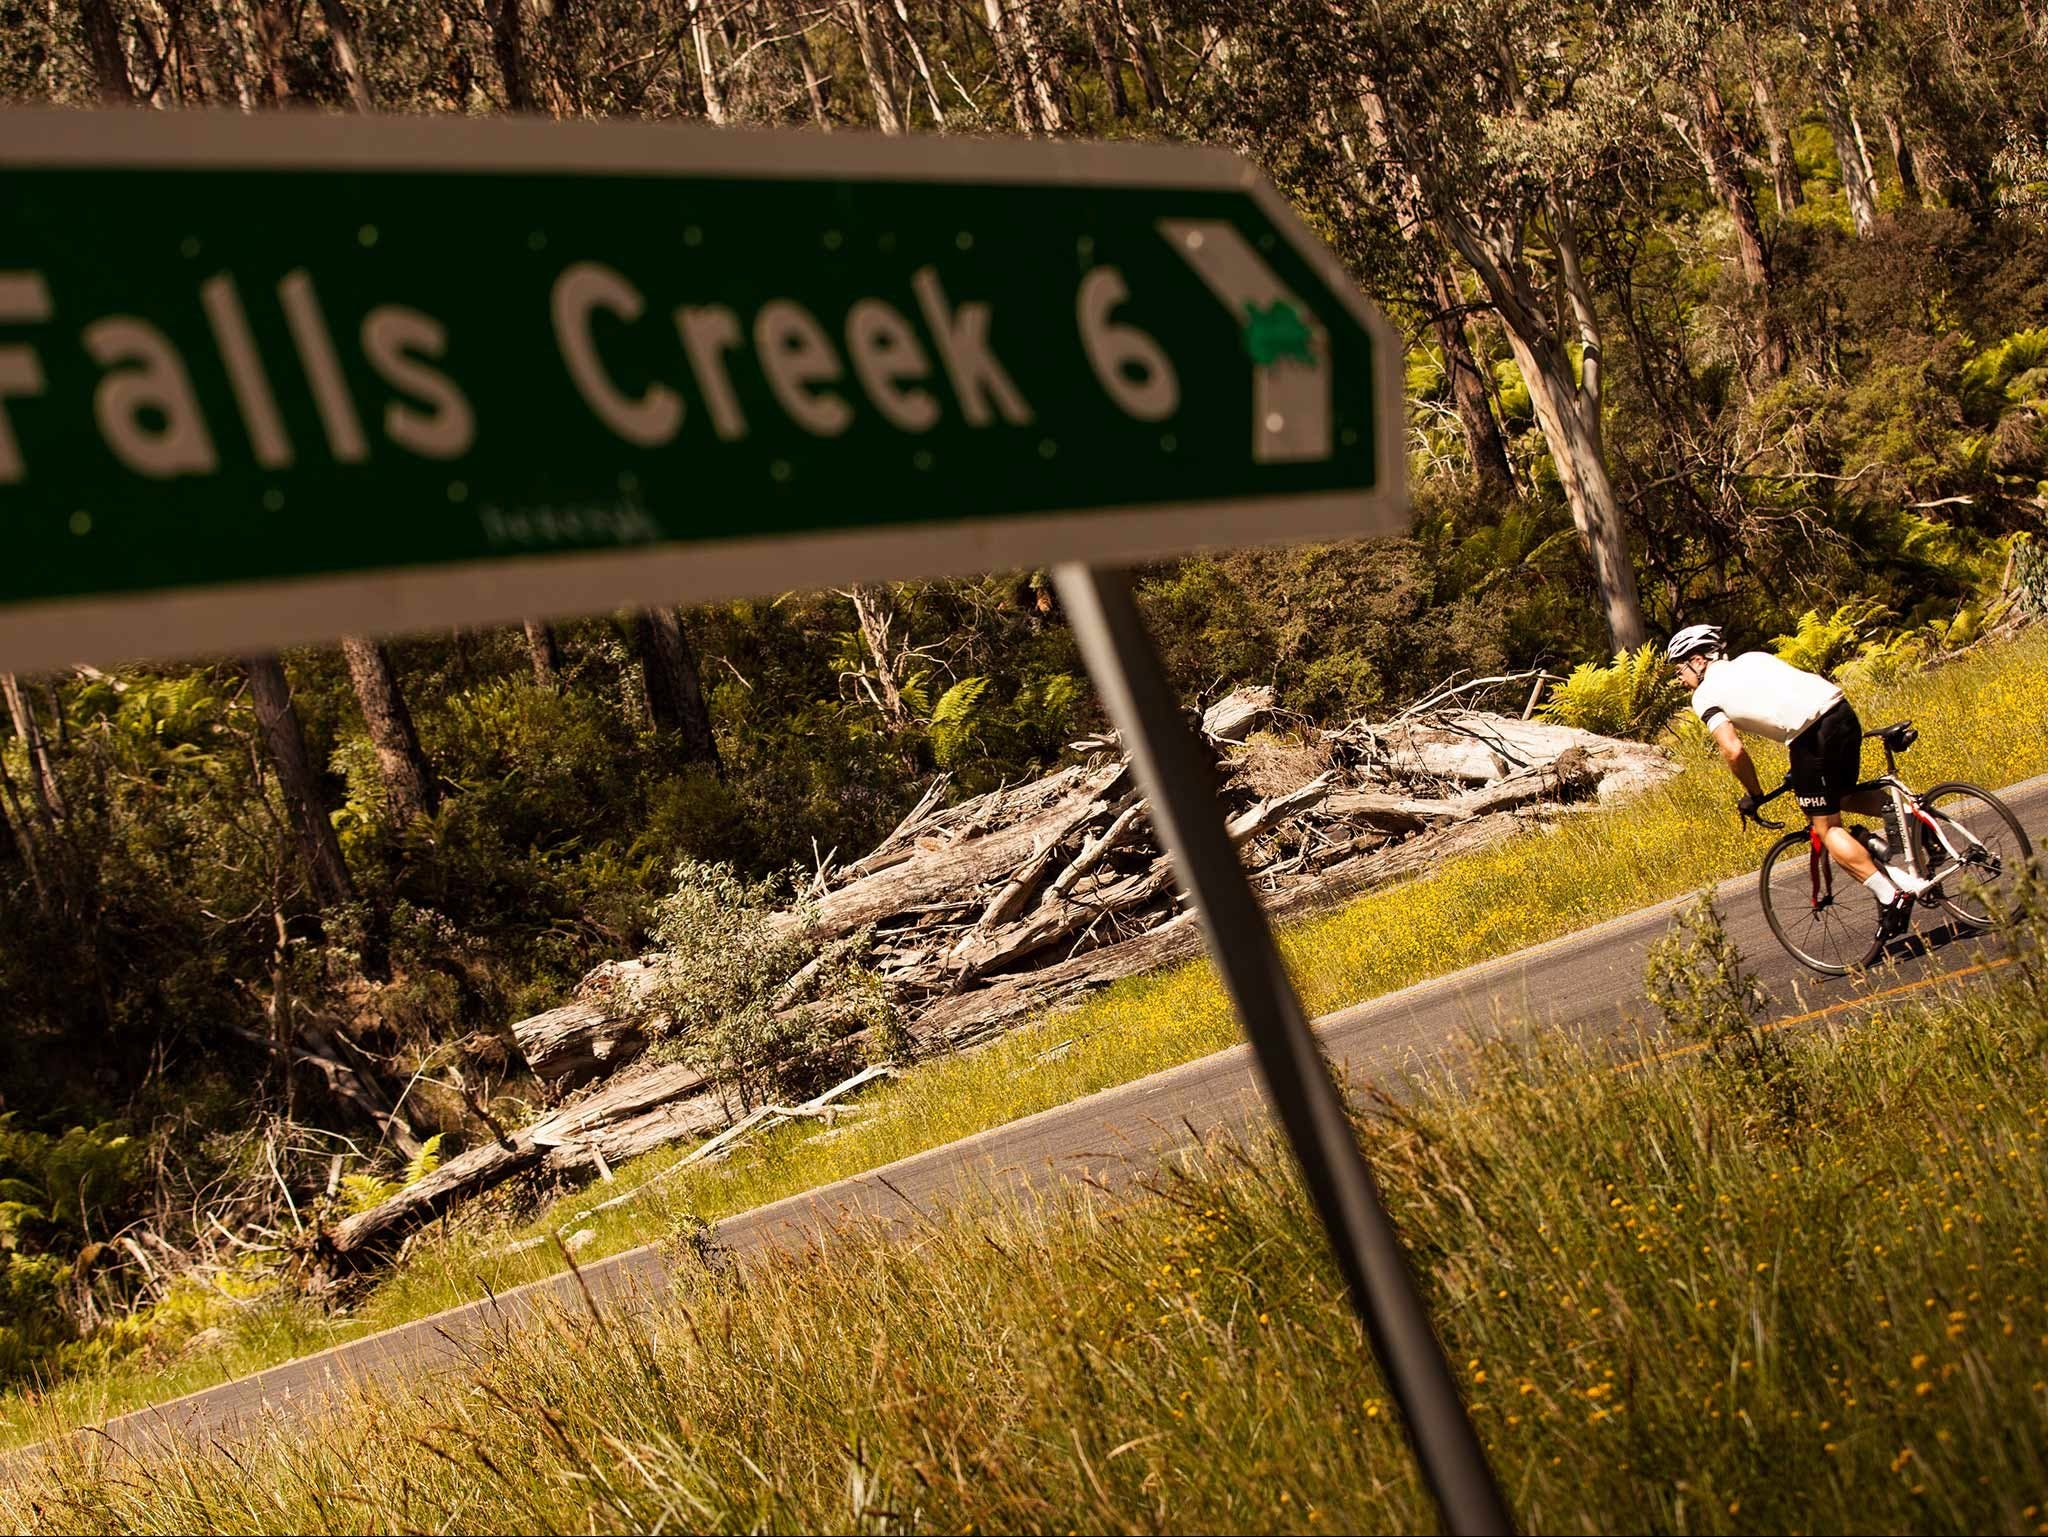 7 Peaks Ride - Falls Creek - Accommodation Cairns